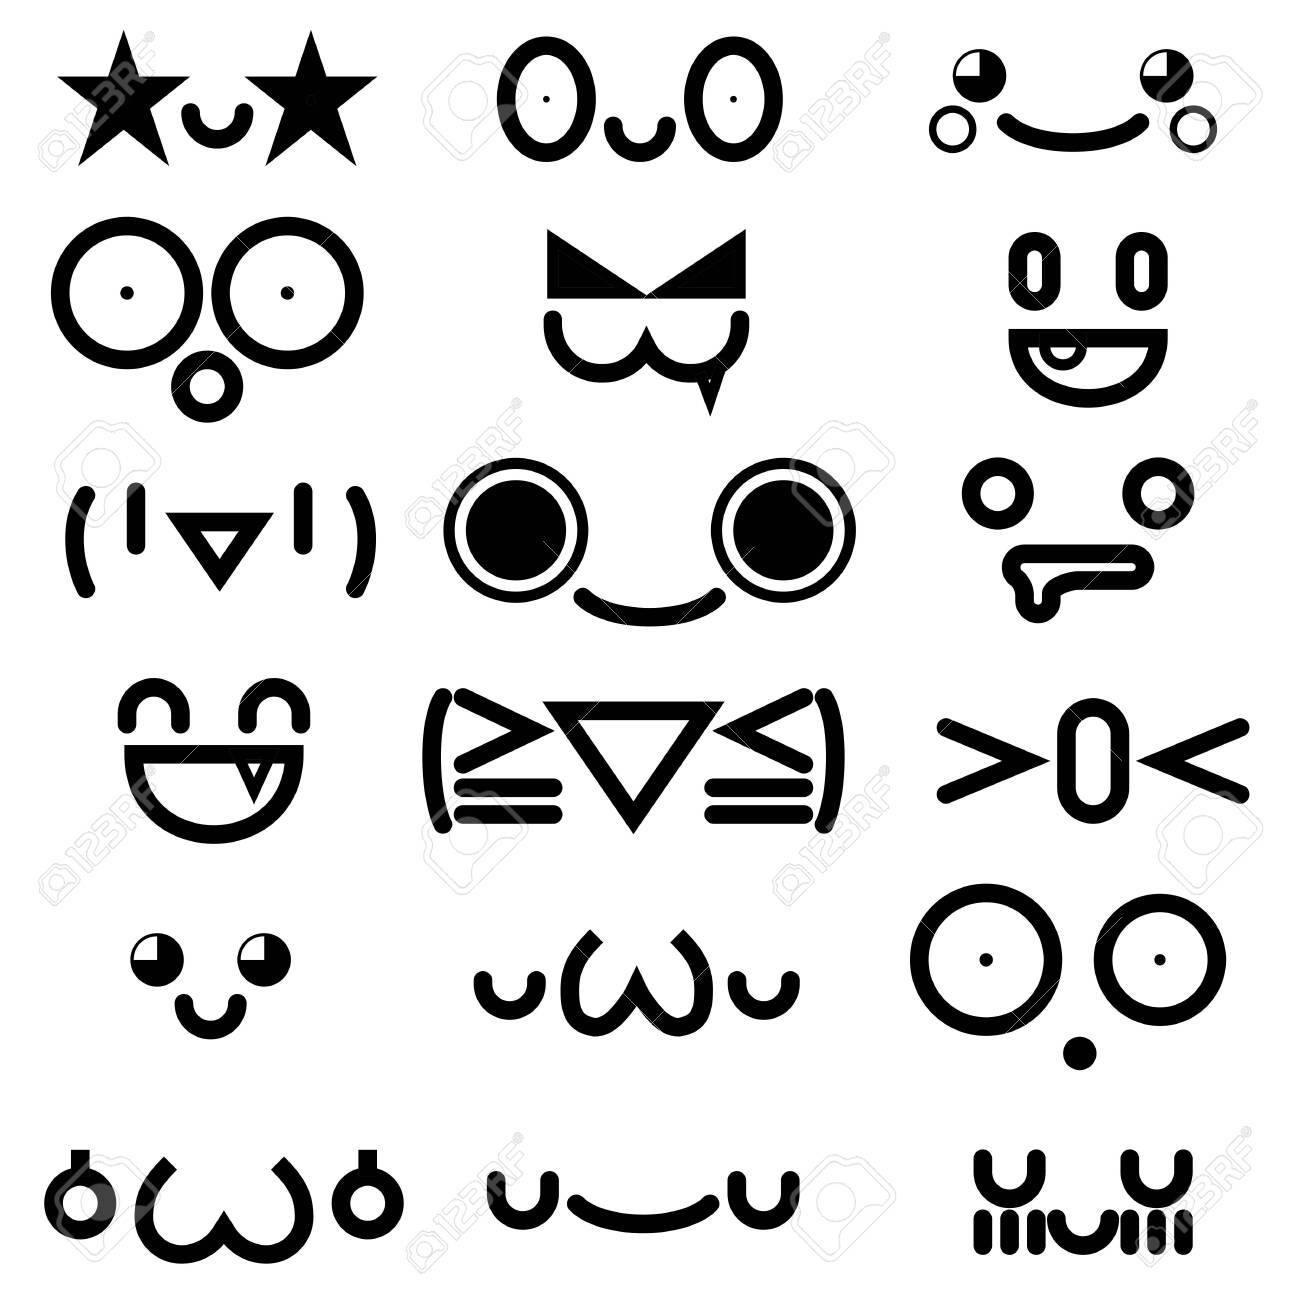 cute kawaii emoticon face collection isolated on white background. - 158438306